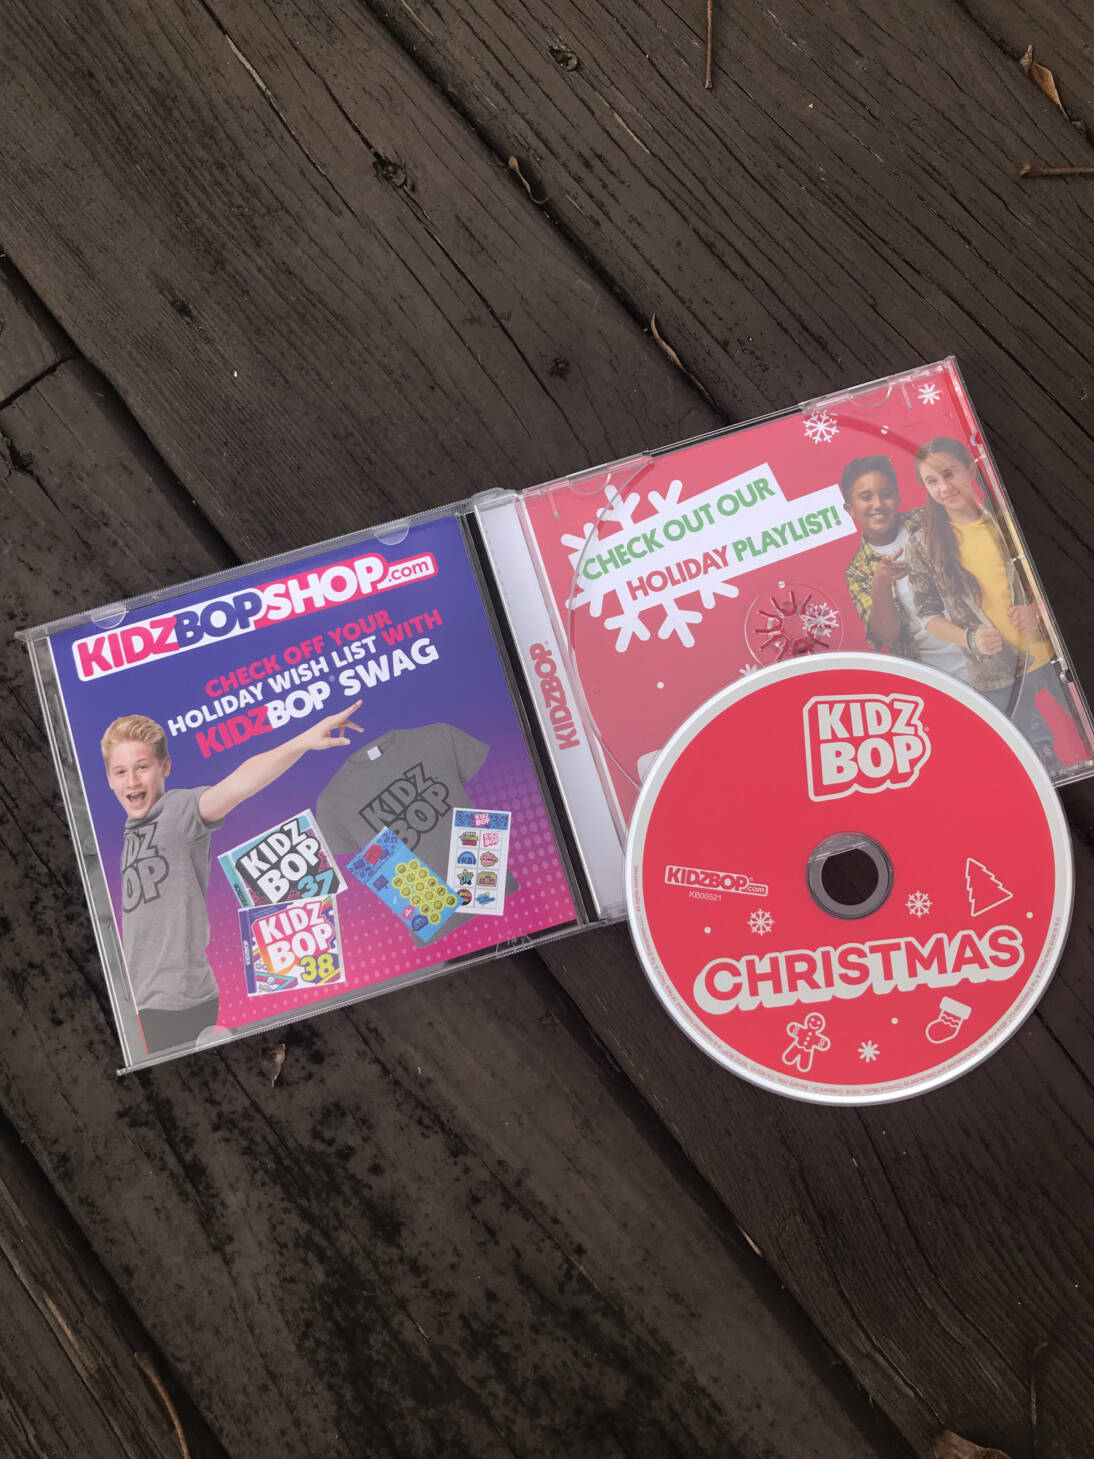 Kidz Bop Christmas CD Review - Outnumbered 3 to 1